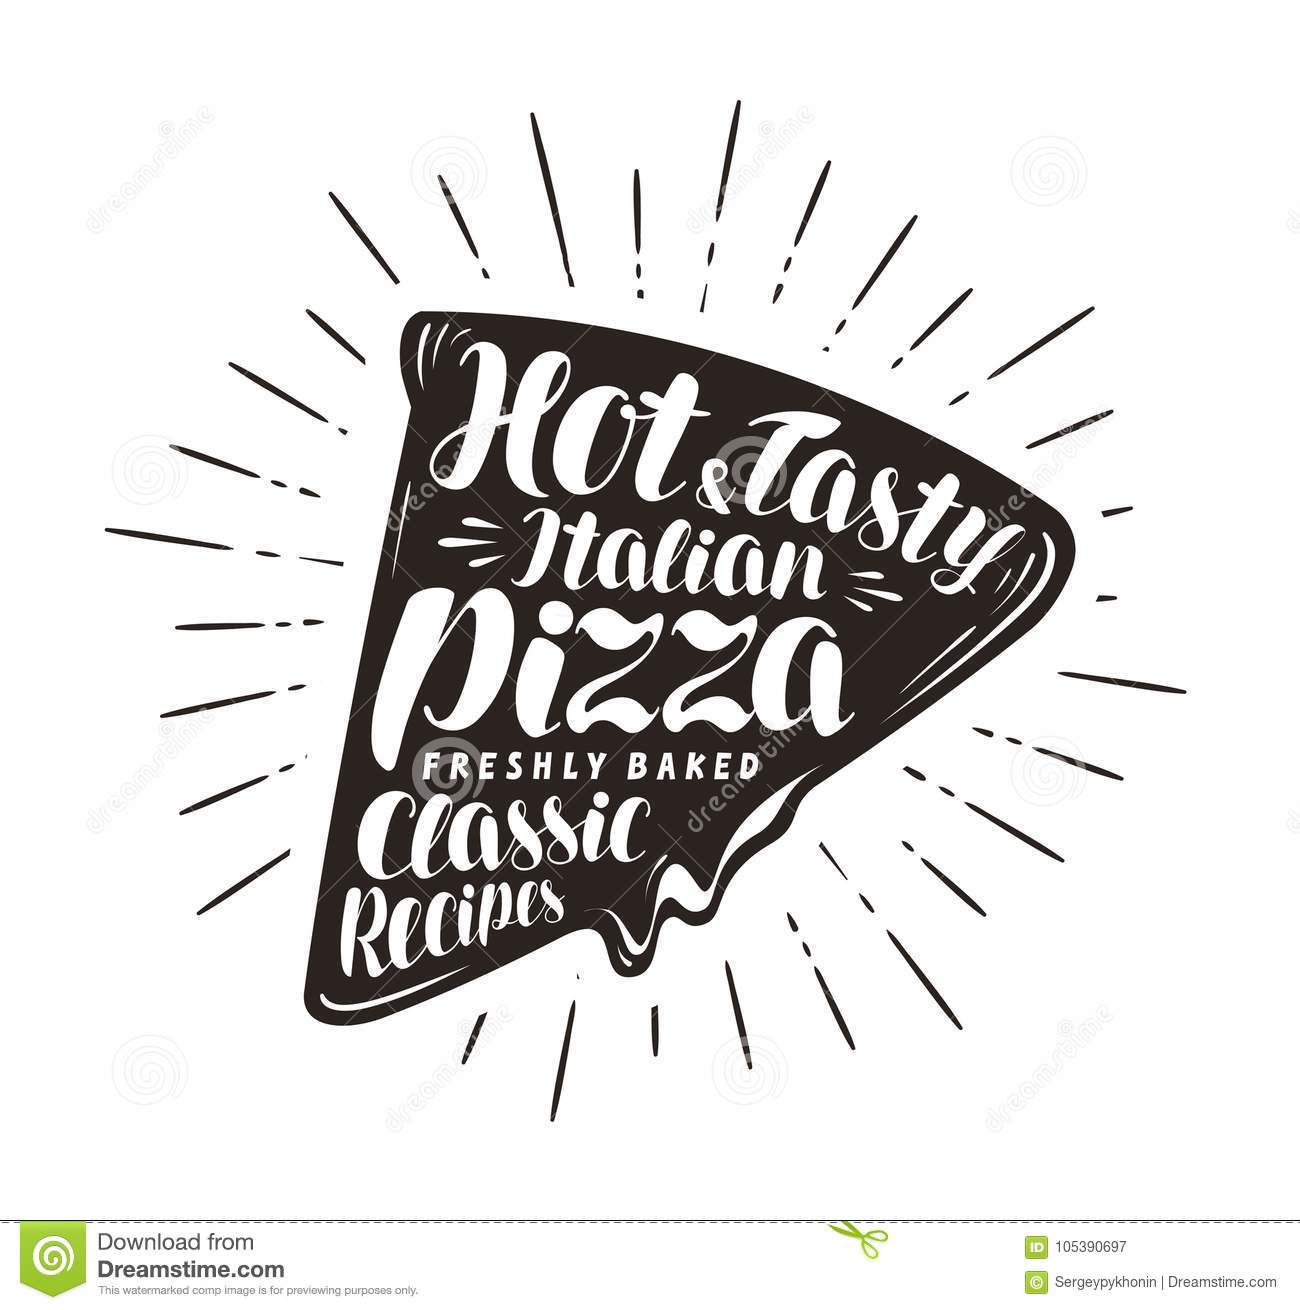 Piece of pizza, pizzeria, fast food concept. Written by hand lettering or calligraphy. Typography vector illustration